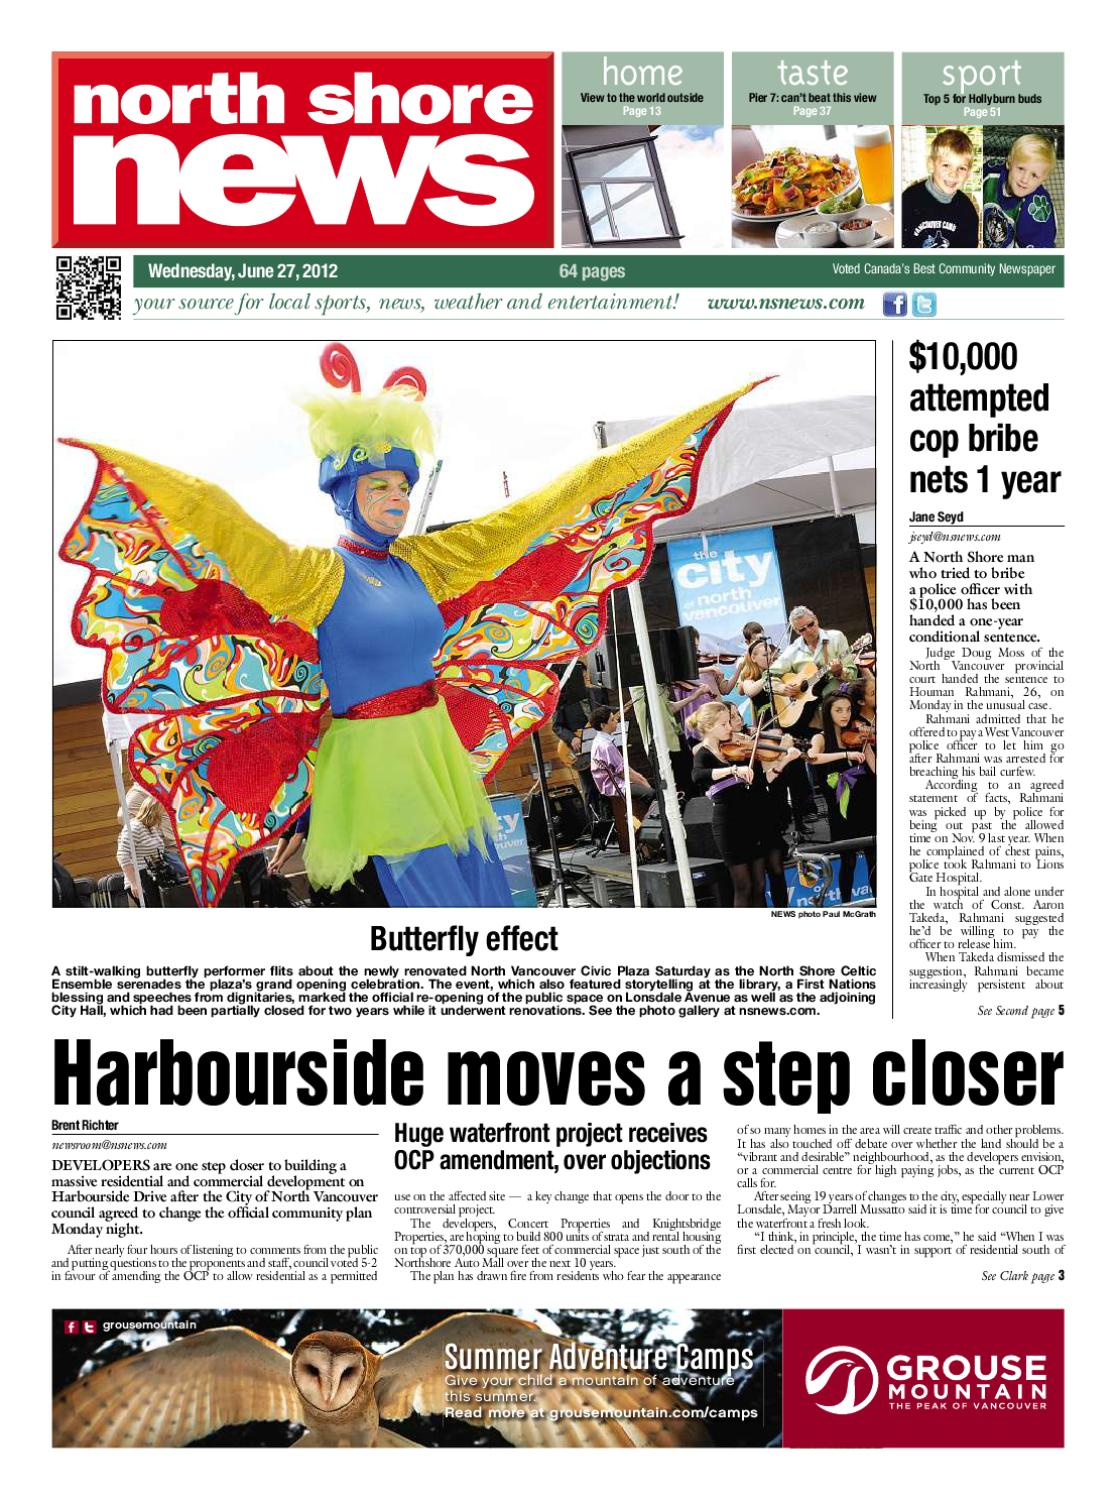 North Shore News June 27 2012 By Glacier Digital